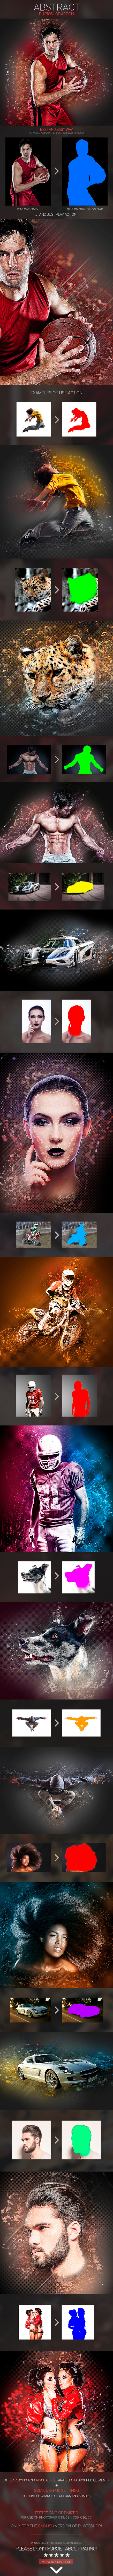 GraphicRiver Abstract Photoshop Action 9325380